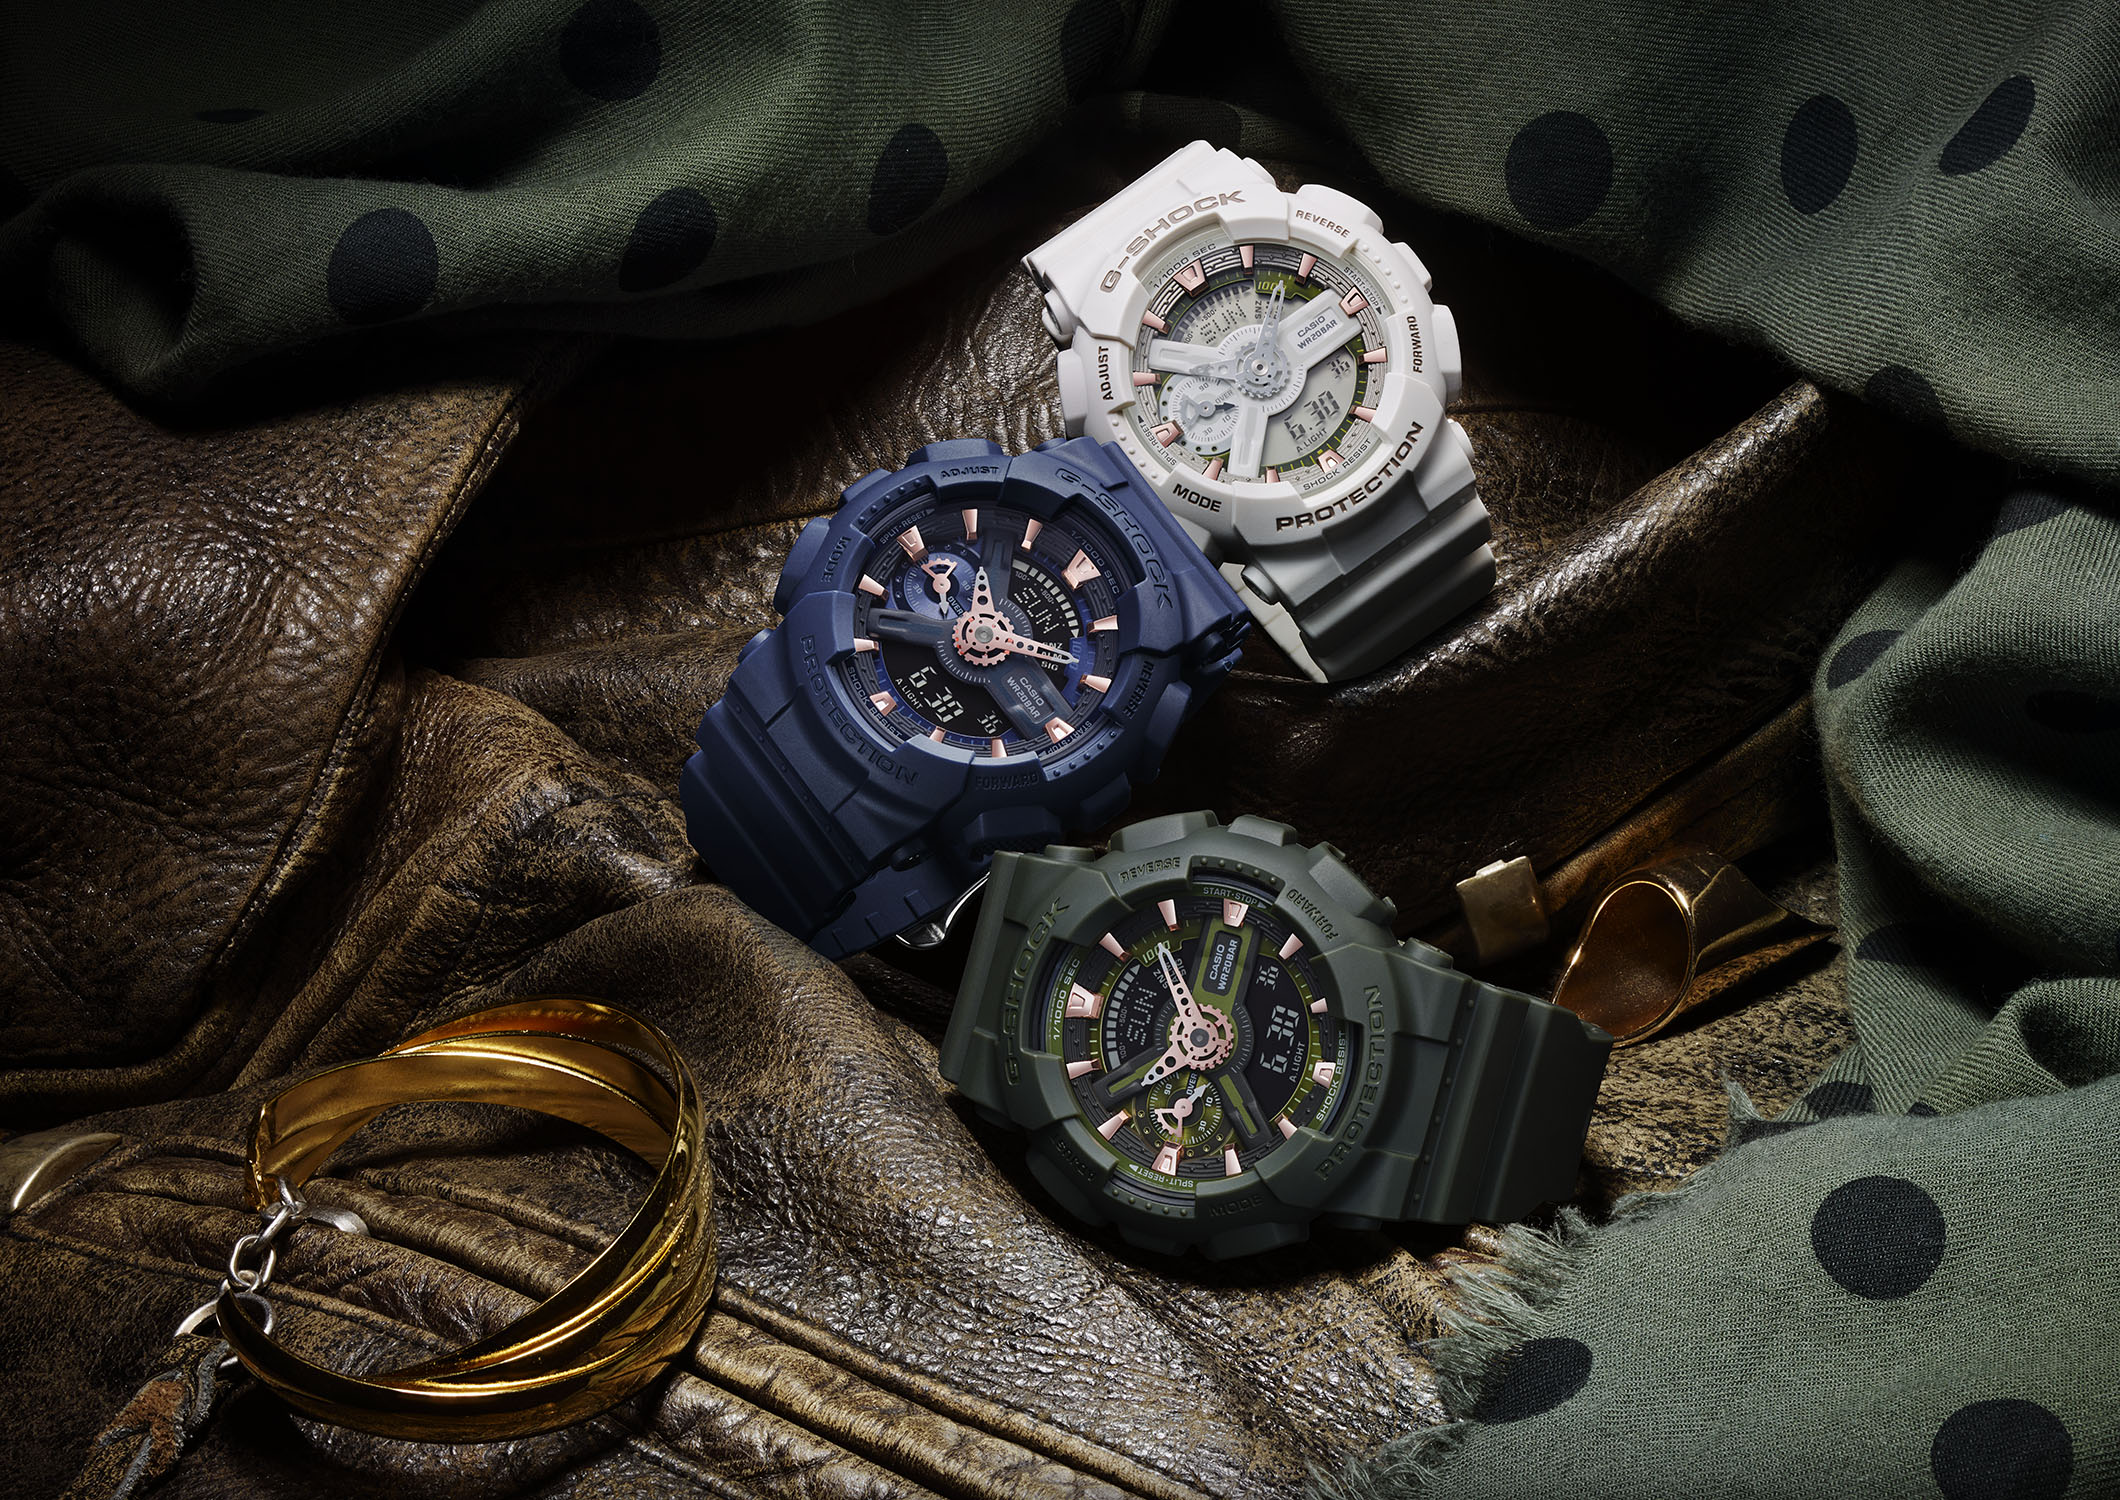 [Official] G-SHOCK S SERIES ANNOUNCES MILITARY COLLECTION FOR SPRING 2016